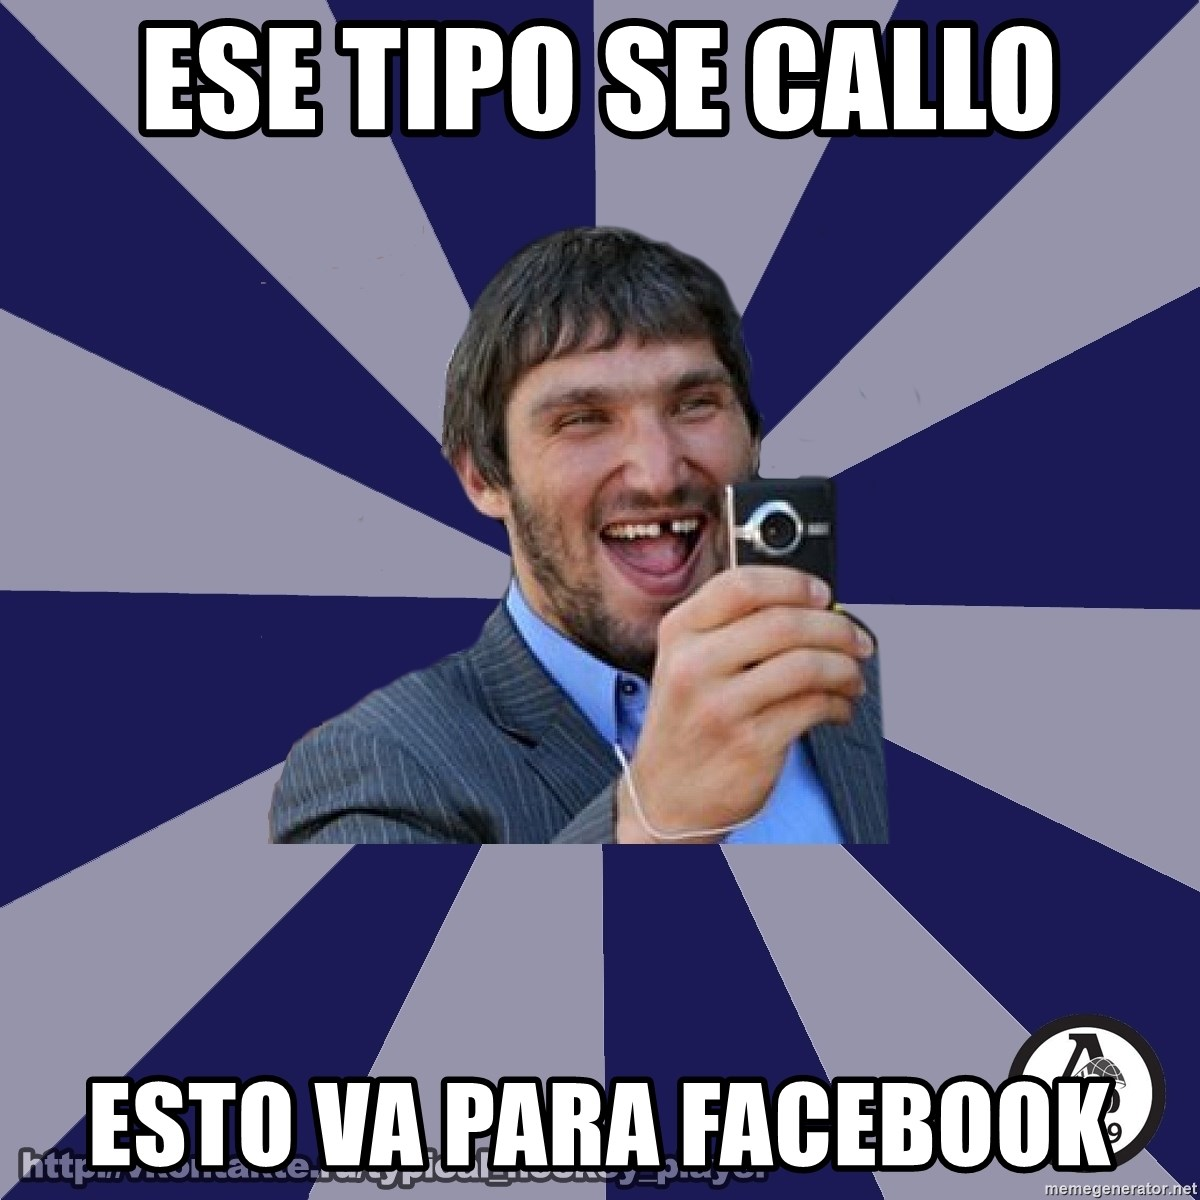 typical_hockey_player - ese tipo se callo esto va para facebook